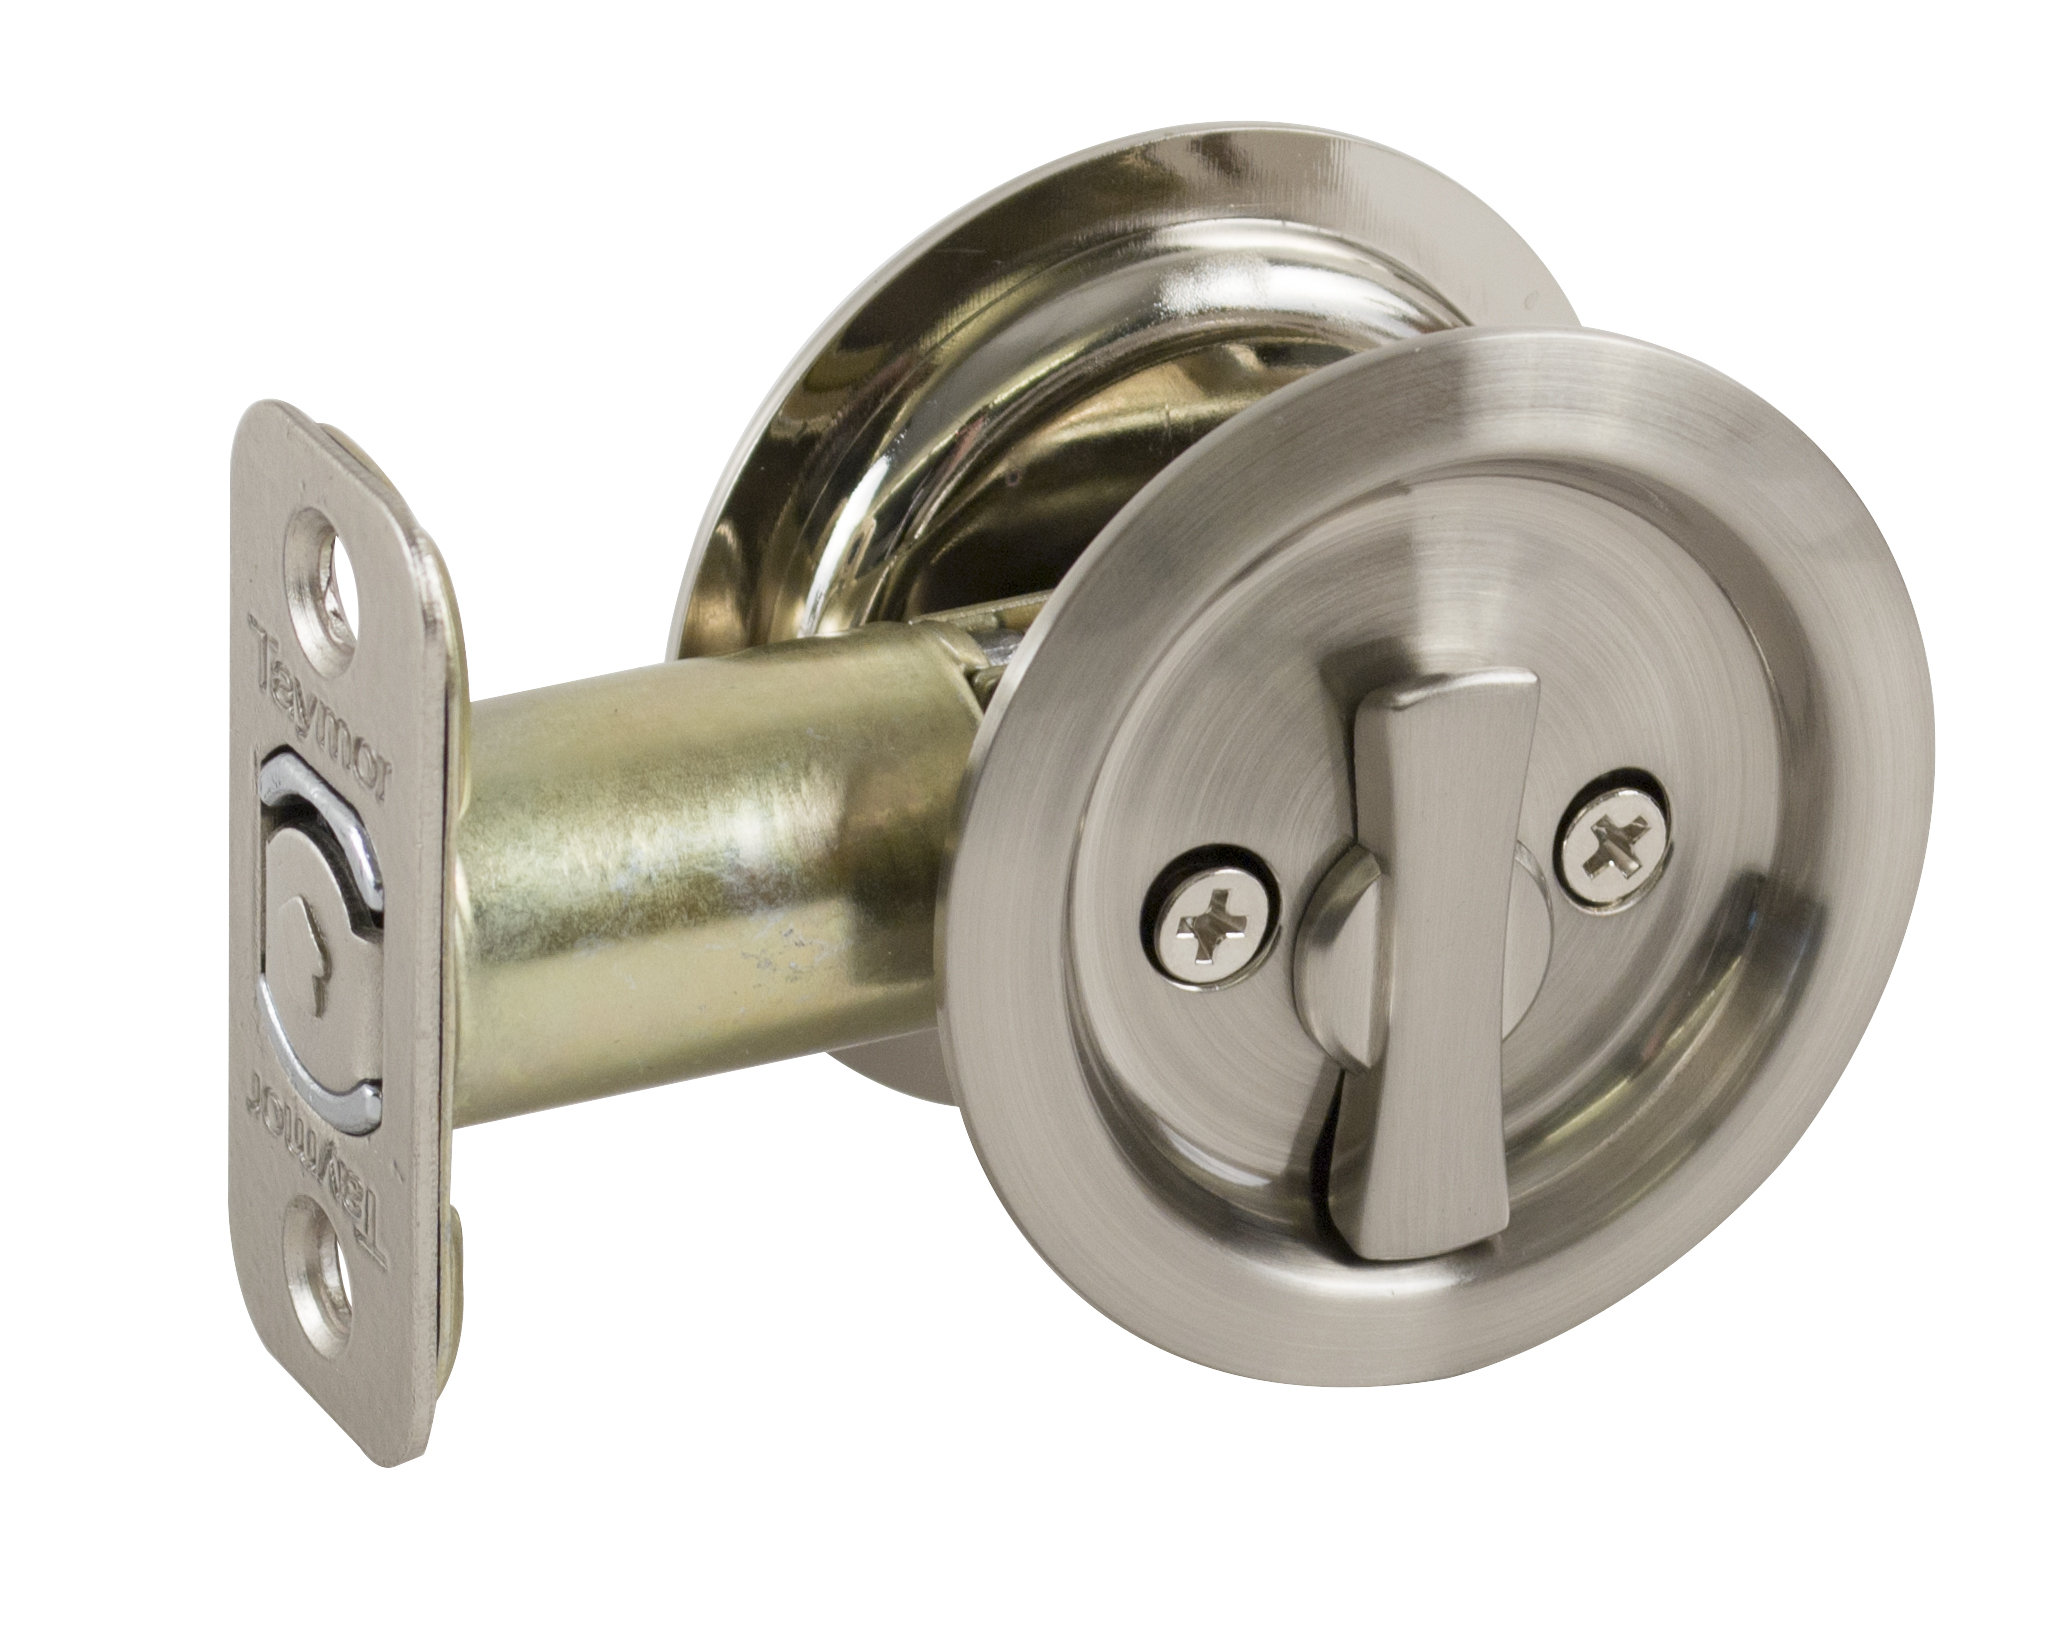 Le Meilleur Round Sliding Door Lock Sliding Door Lock Taymor Usa Ce Mois Ci